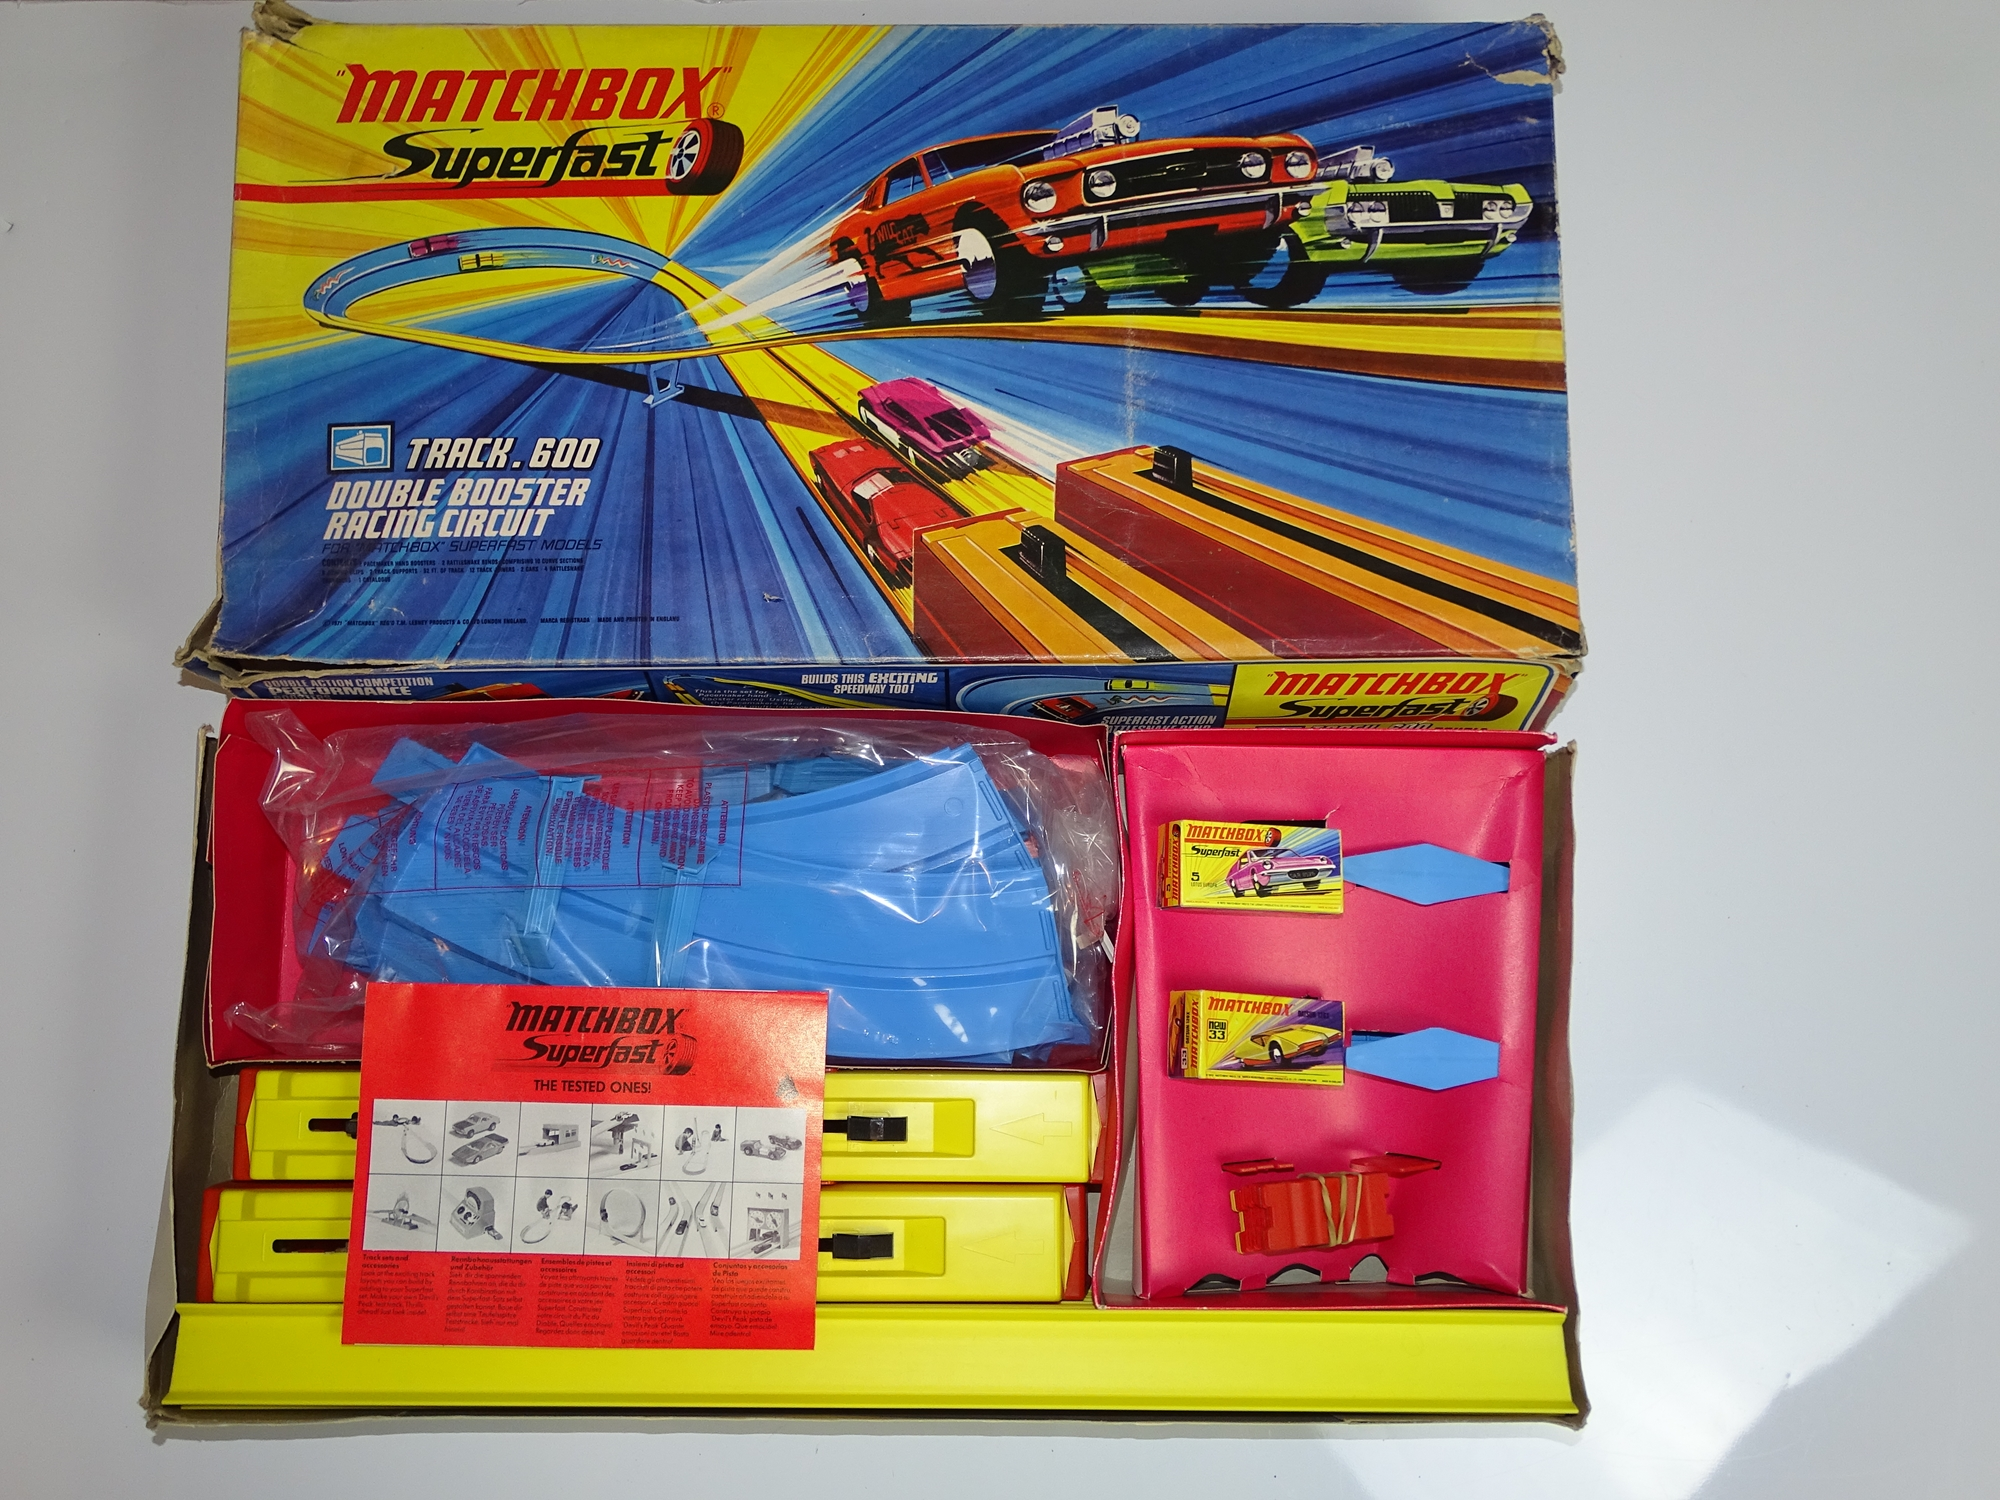 Lot 10 - A MATCHBOX SUPERFAST Track 600 Double Booster Racing Circuit Set - appears complete and unused